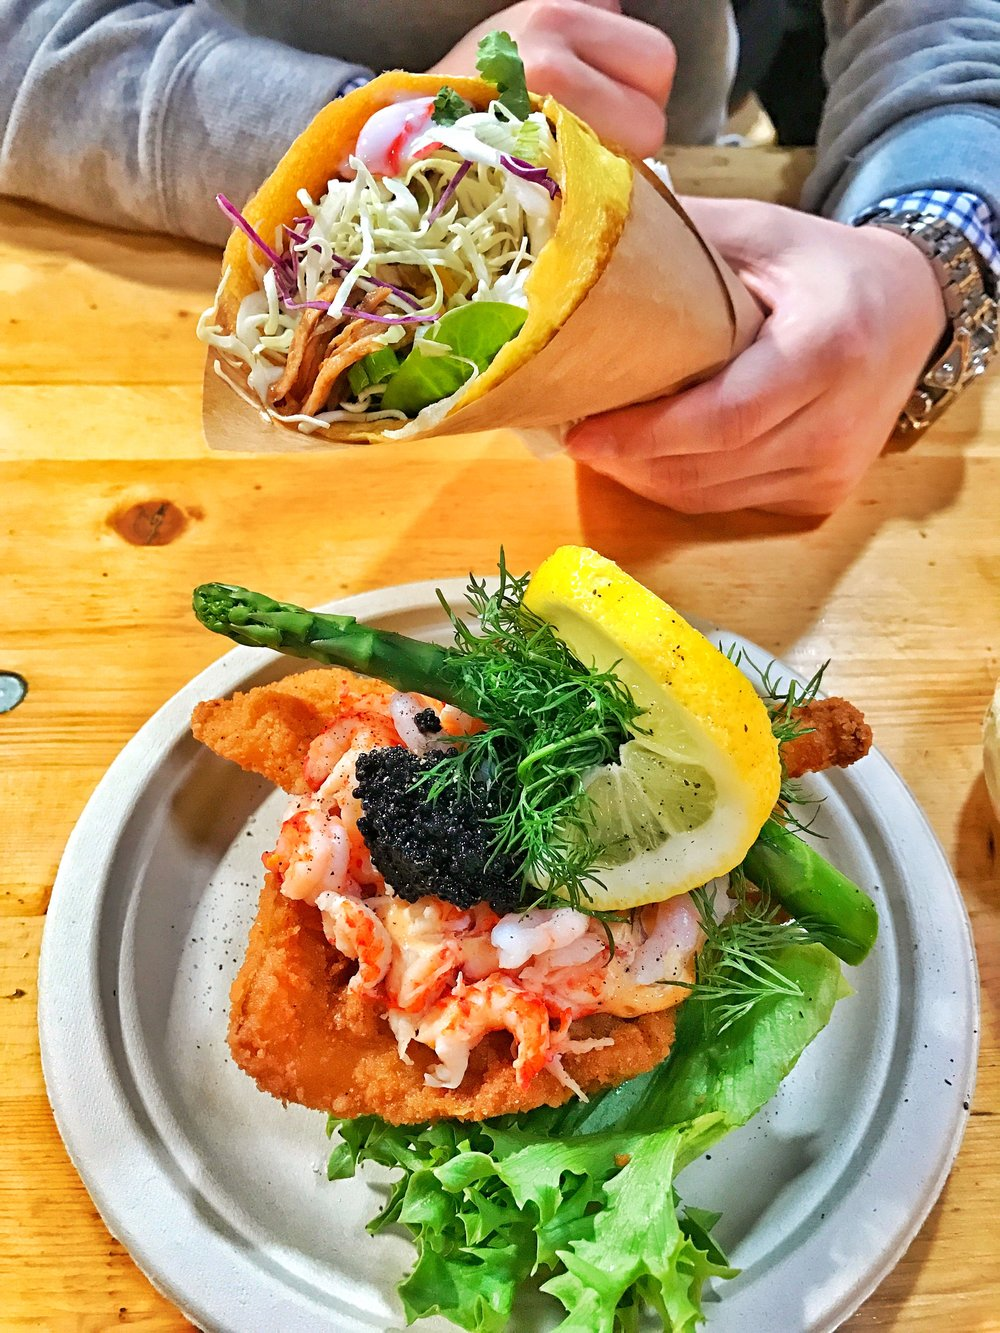 StreetFood @ Papirøen / Egg-wrap burrito & Fried Fish Smørrebrød w/ shrimp & caviar (aka sandwich)